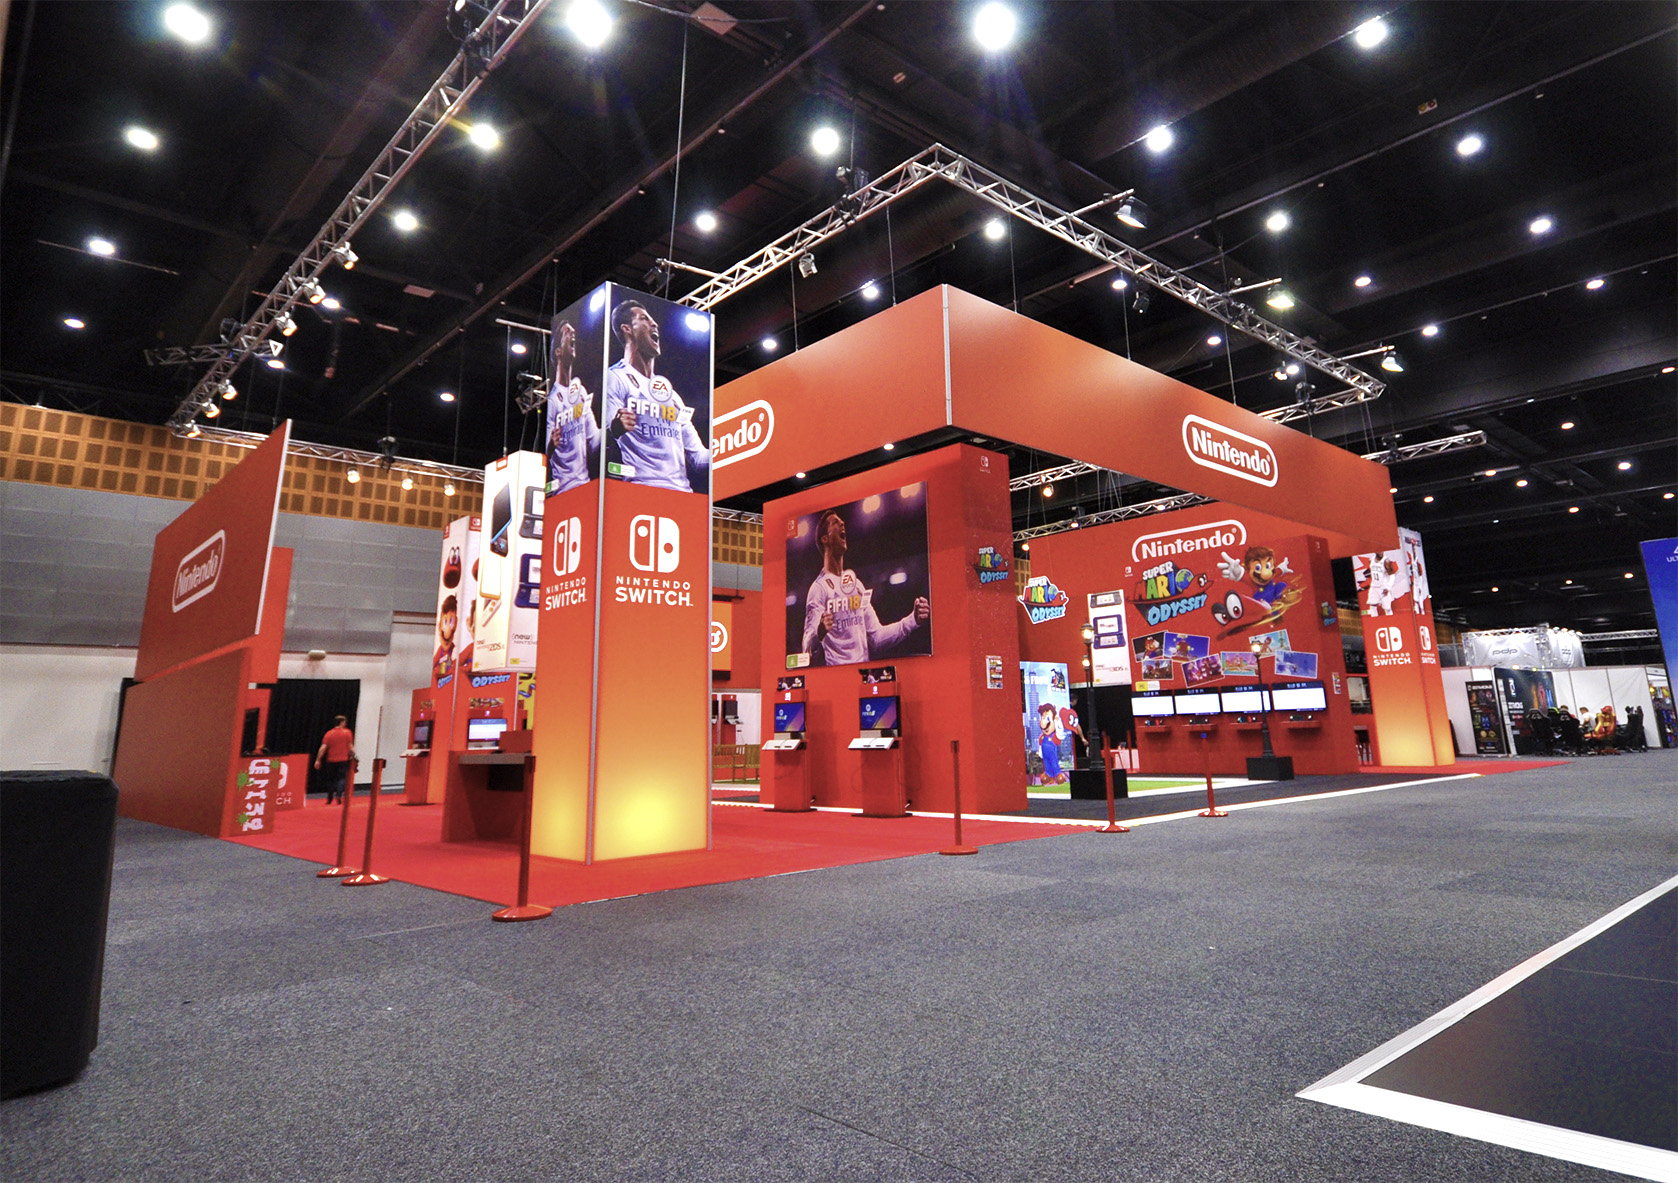 Exhibition Stand Games : Icatchers: custom event fit out event construction design and install